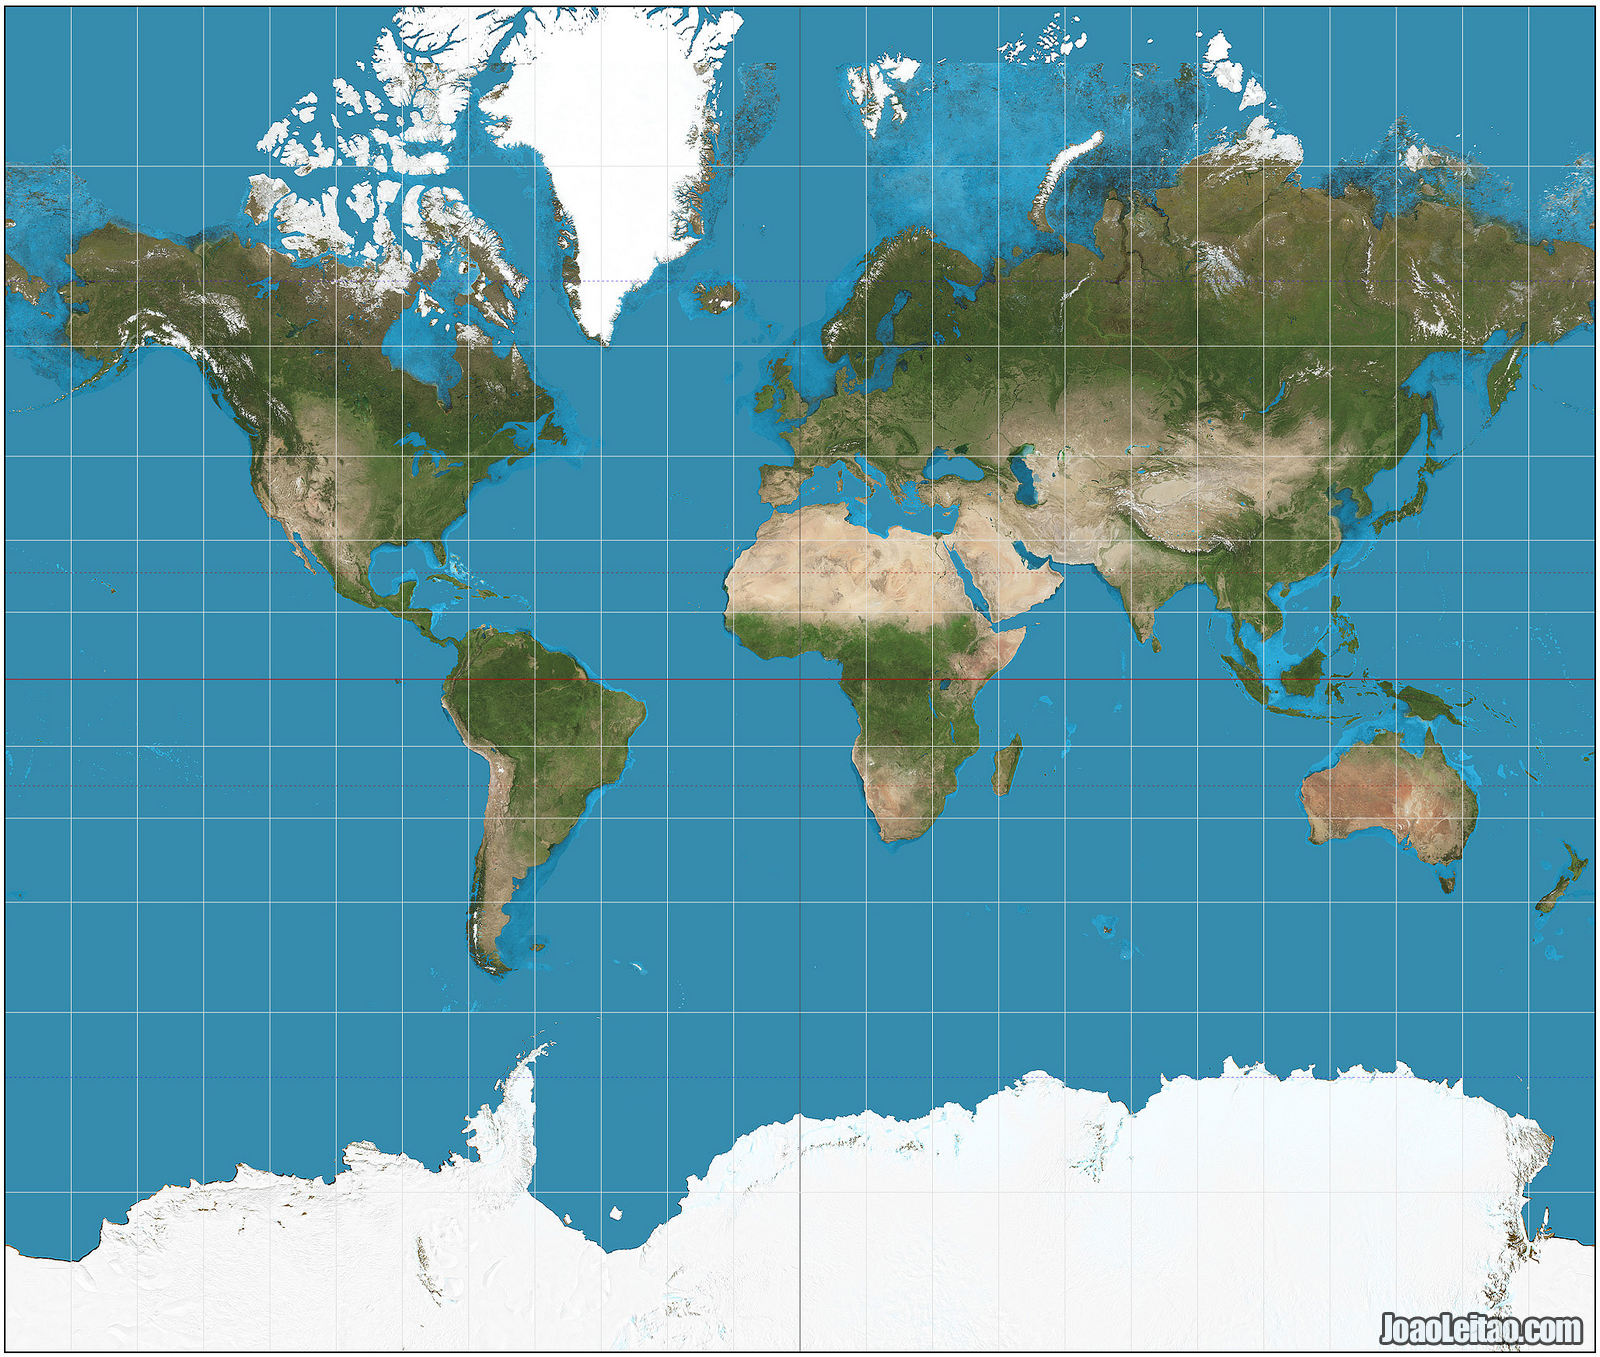 World map with the Mercator projection